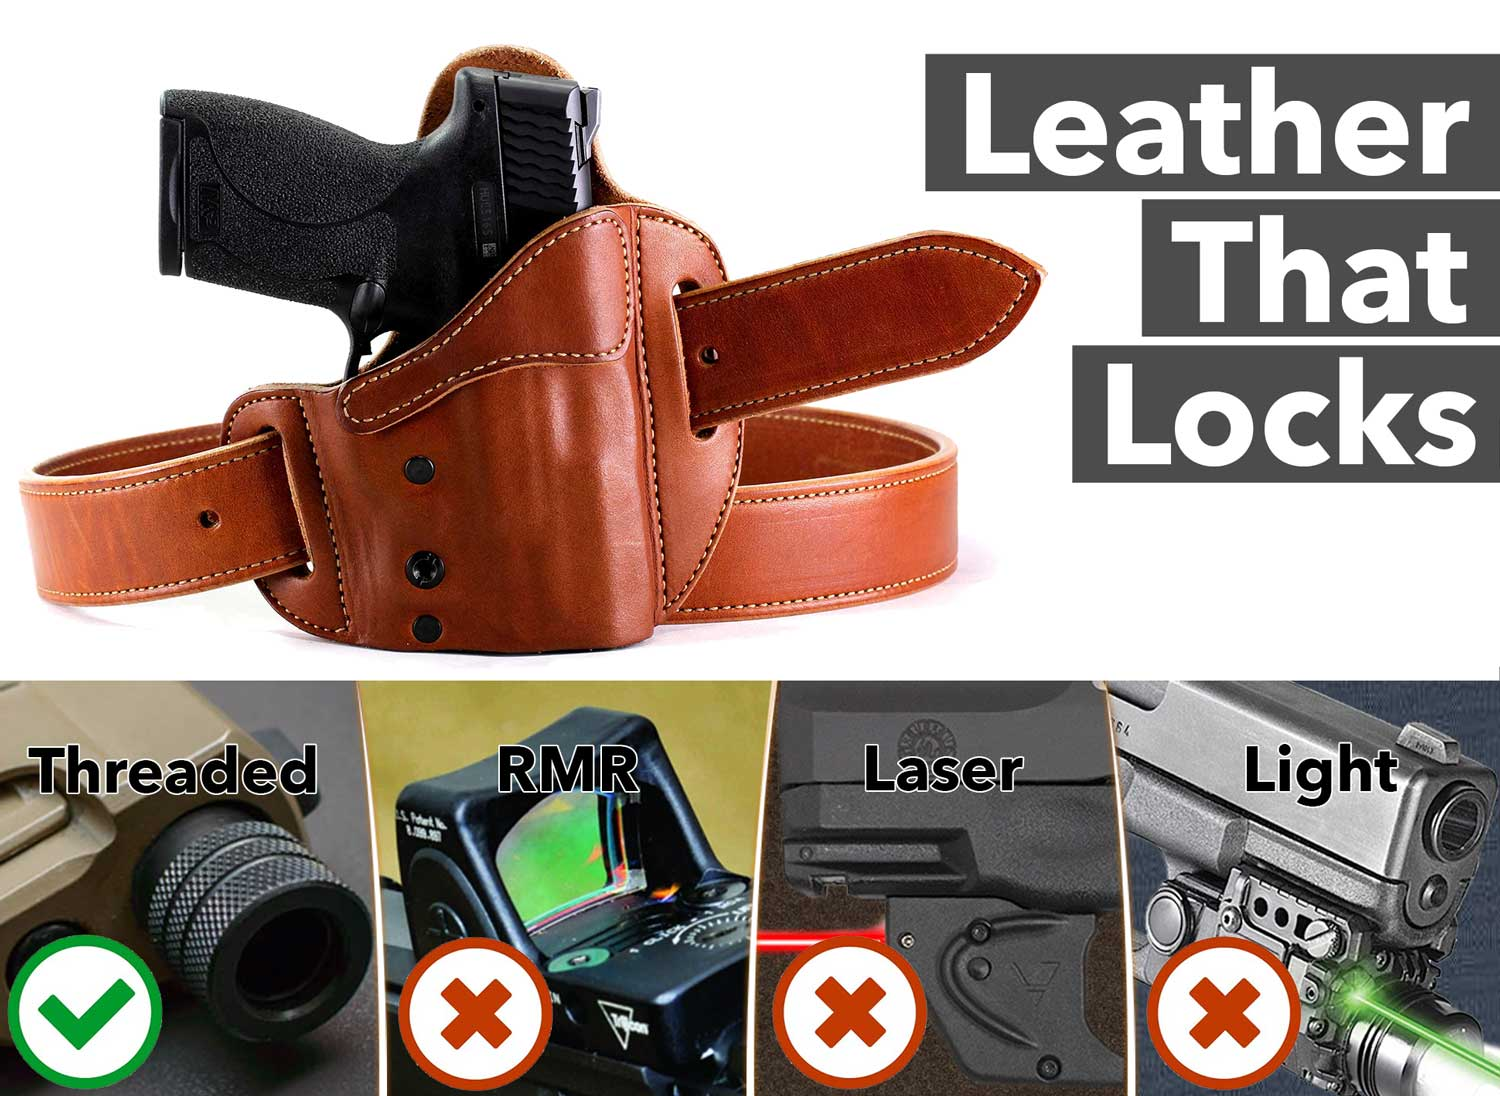 LockLeather Compatible Tactical Features